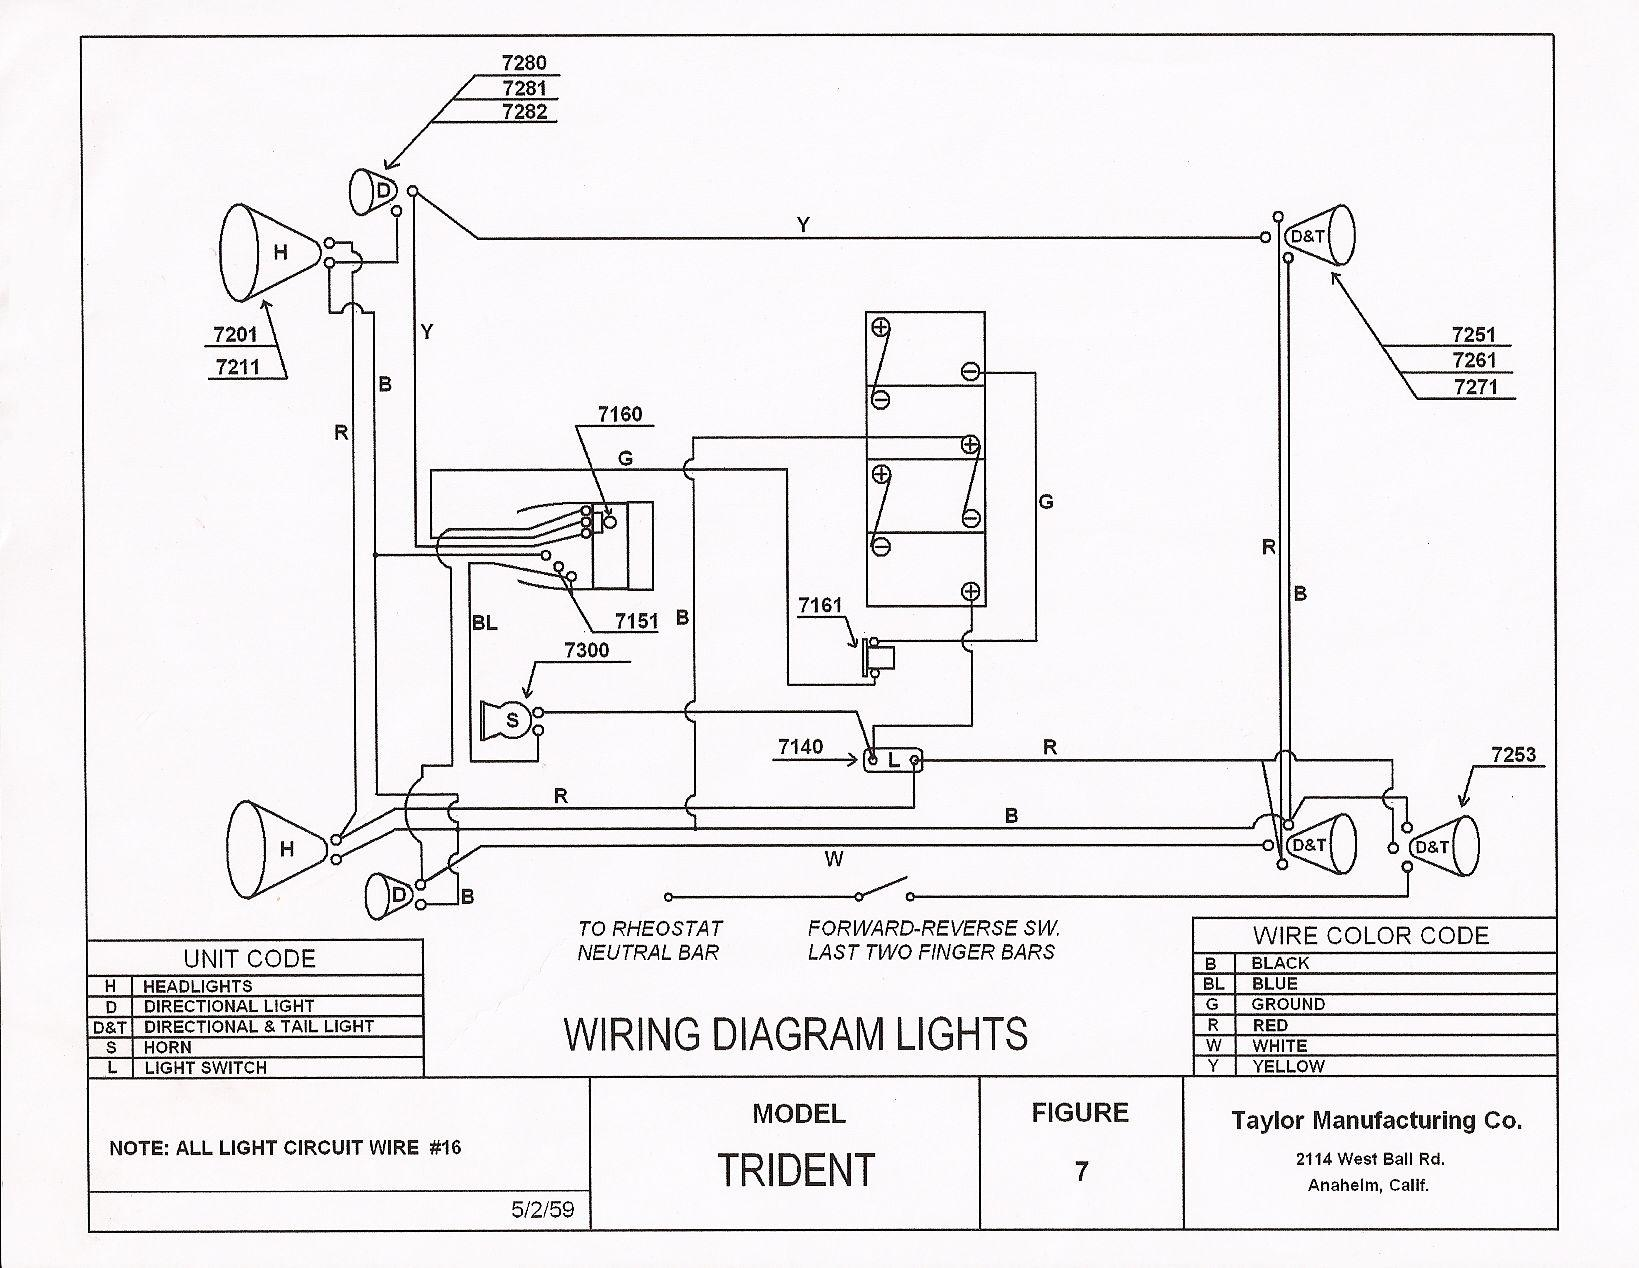 taylor fork lift wiring diagram free download wiring diagram taylor forklift wiring diagram taylor wiring diagram [ 1639 x 1268 Pixel ]